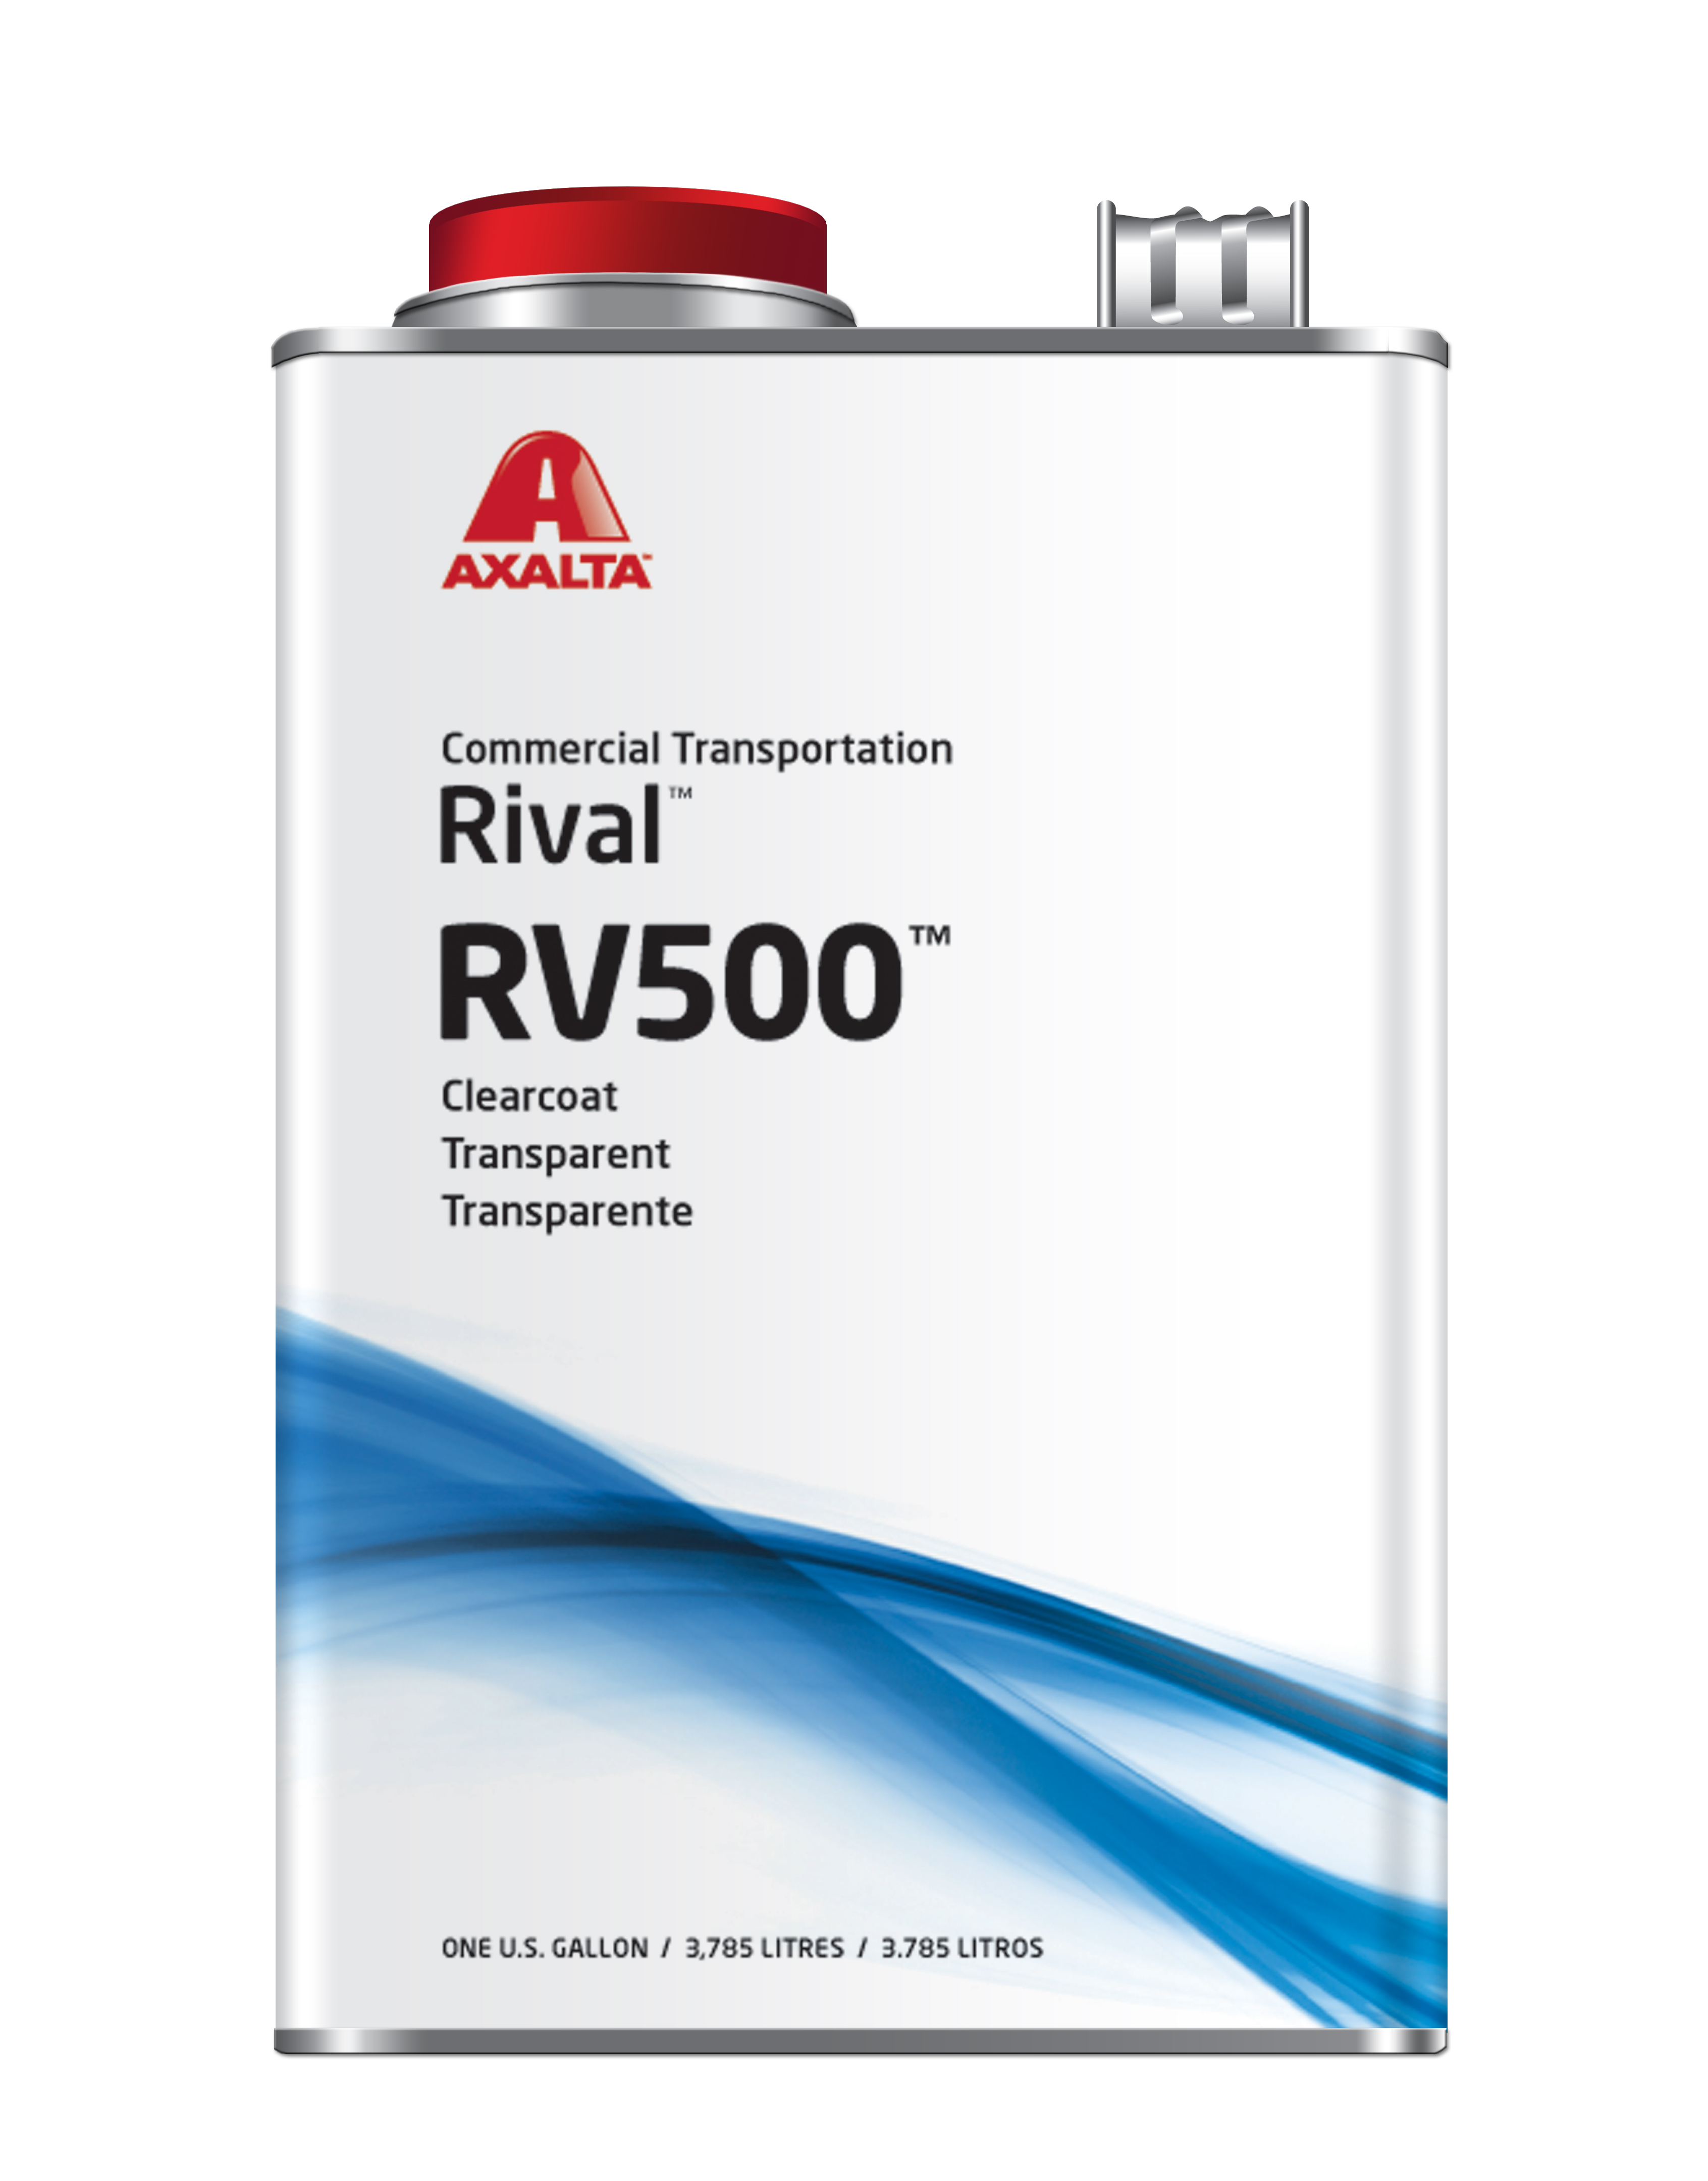 Rival rv500 polyurethane clearcoat 2 1 voc